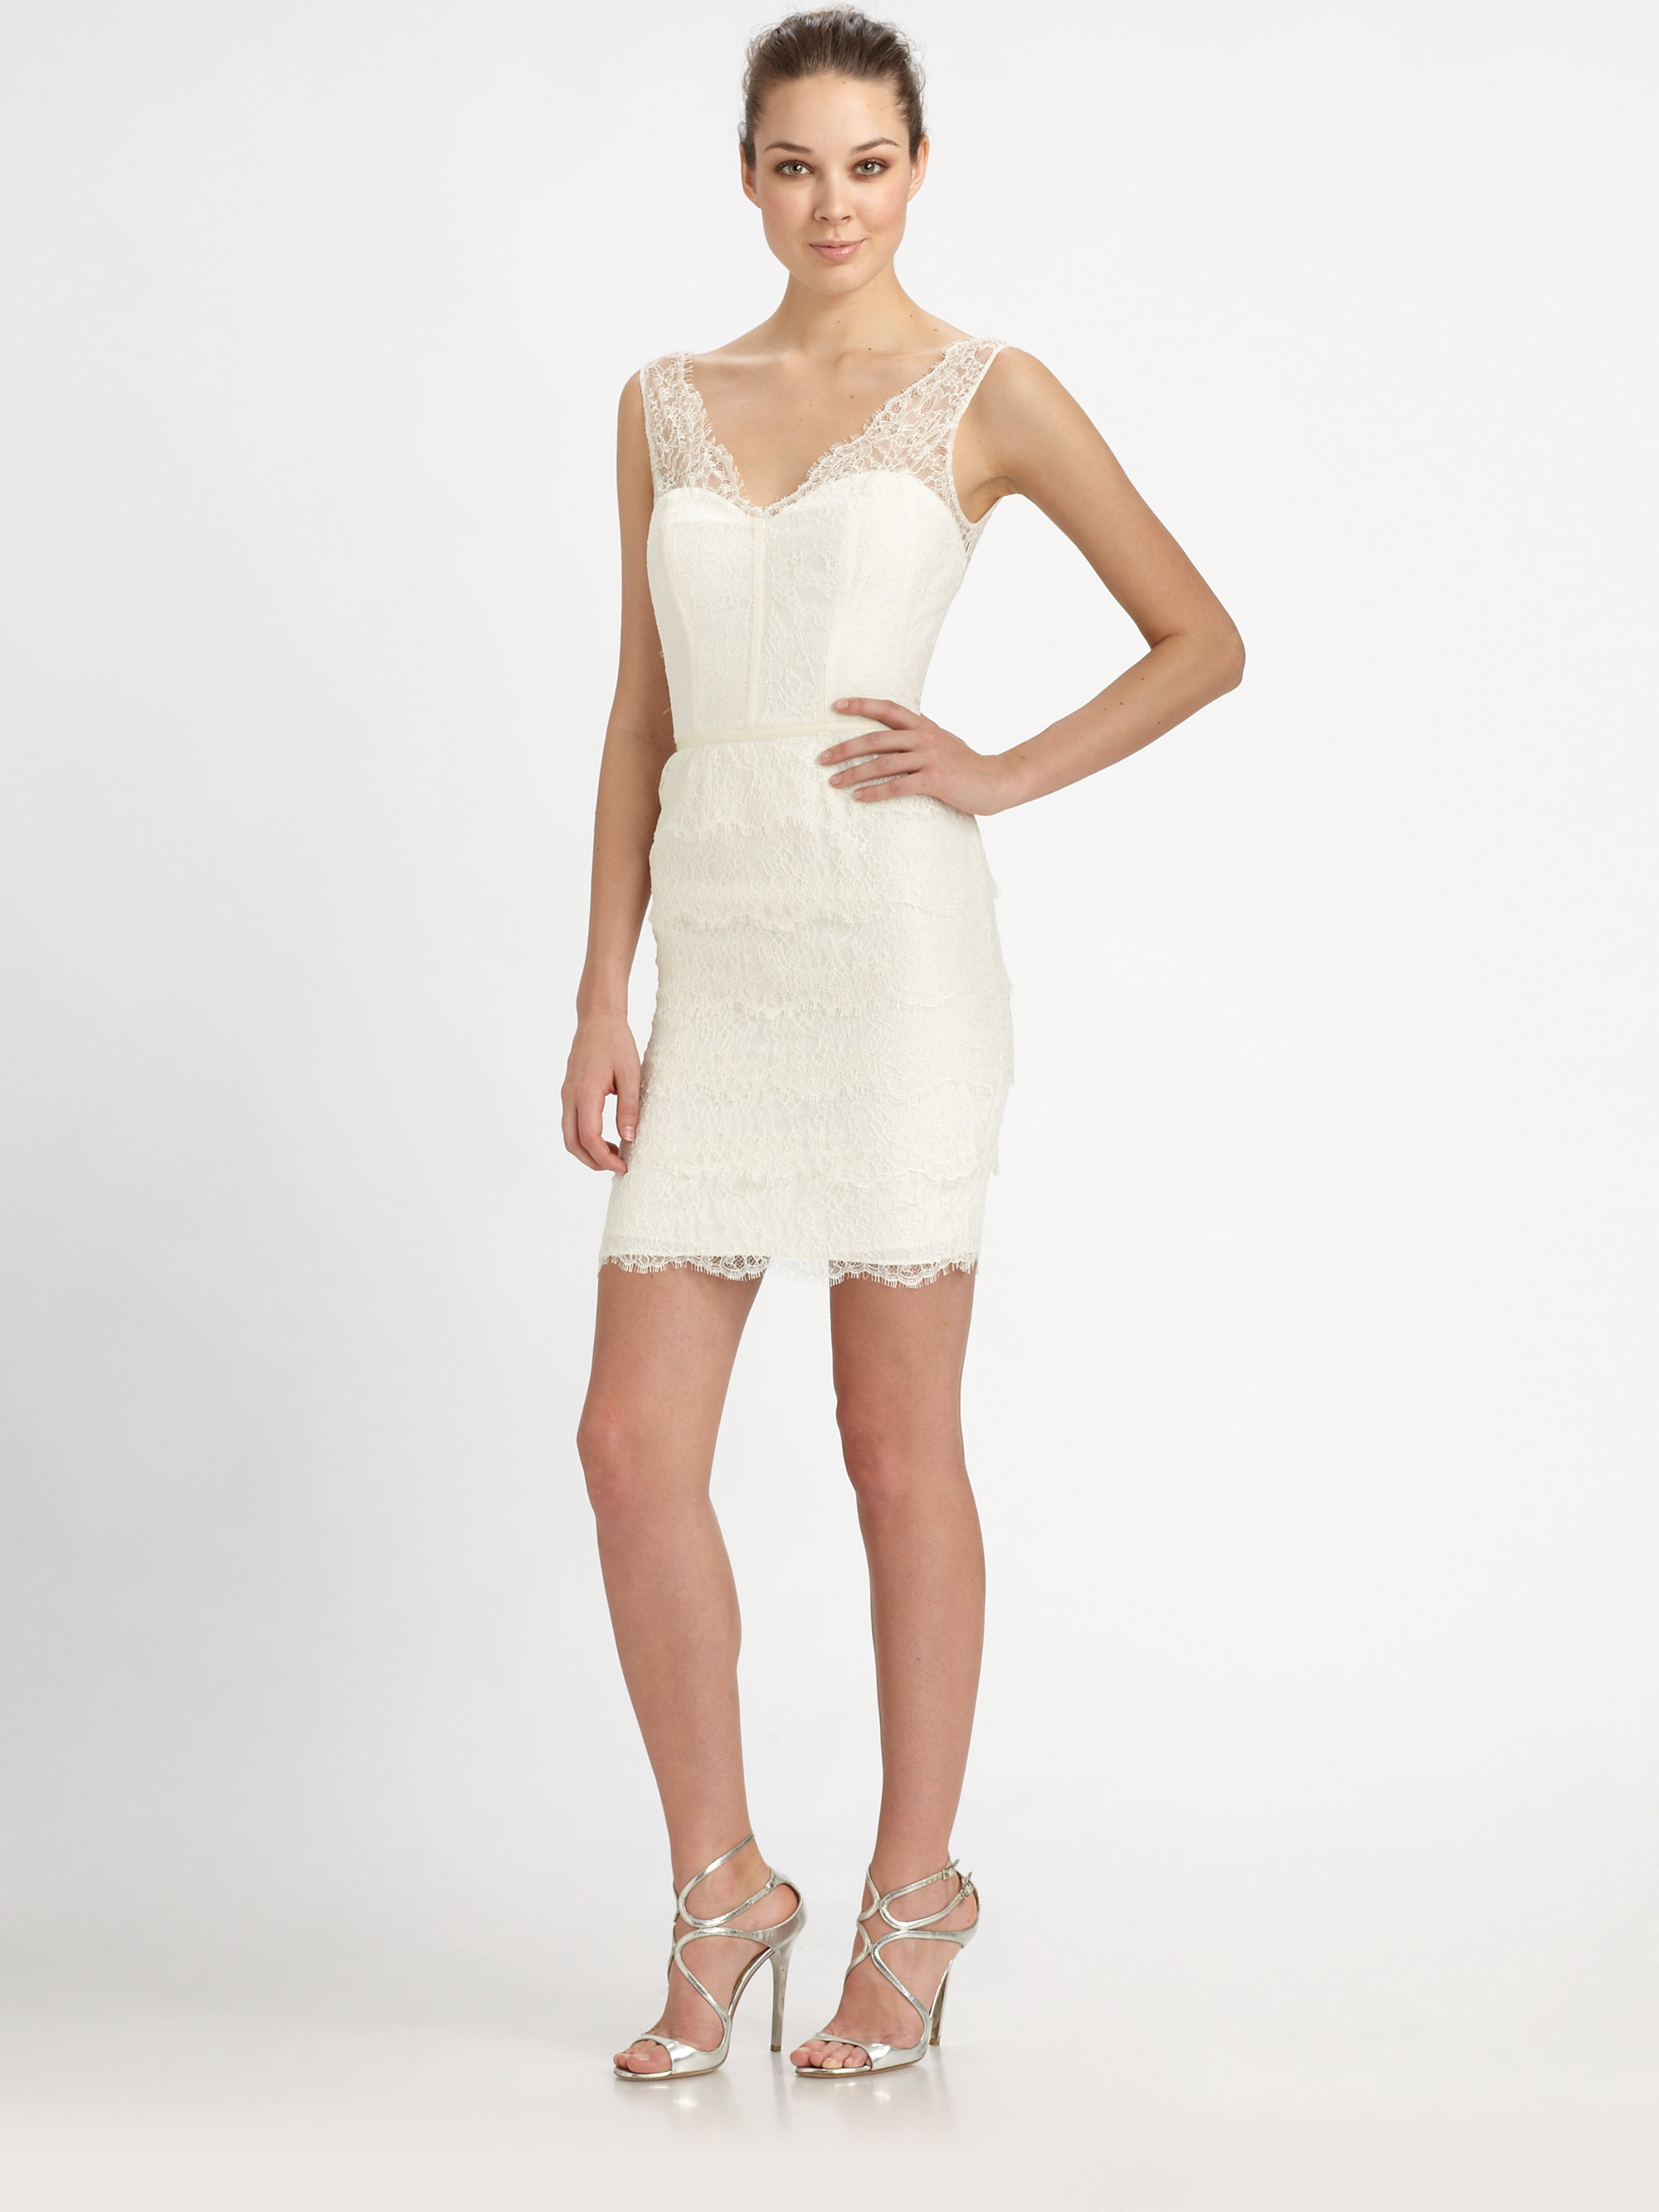 Lyst Ml Monique Lhuillier Tiered Lace Bustier Dress In White